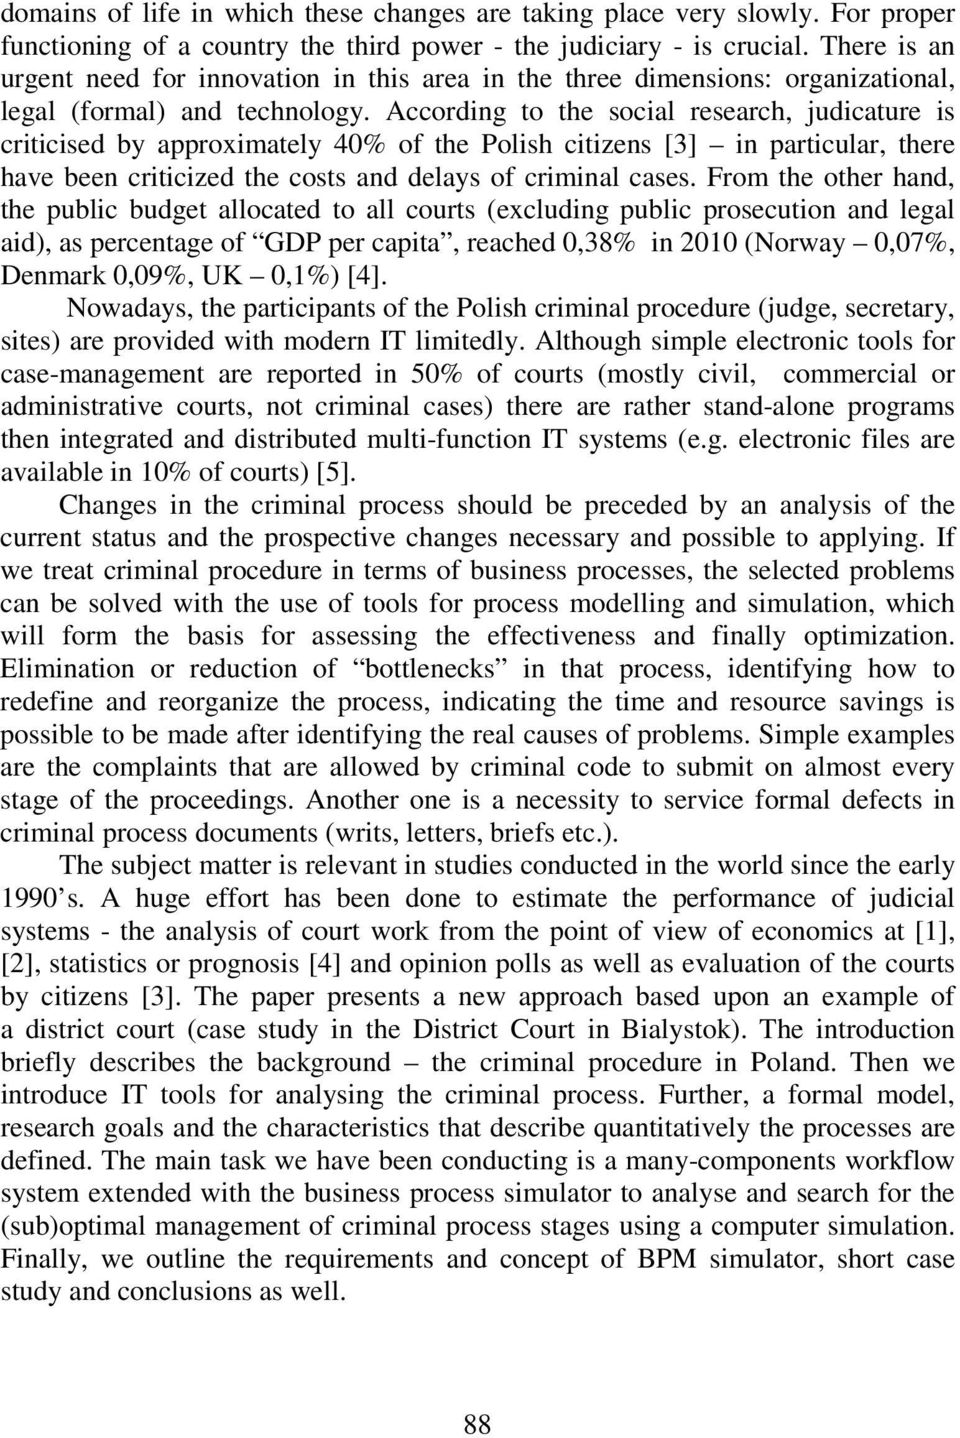 According to the social research, judicature is criticised by approximately 40% of the Polish citiens [3] in particular, there have been criticied the costs and delays of criminal cases.